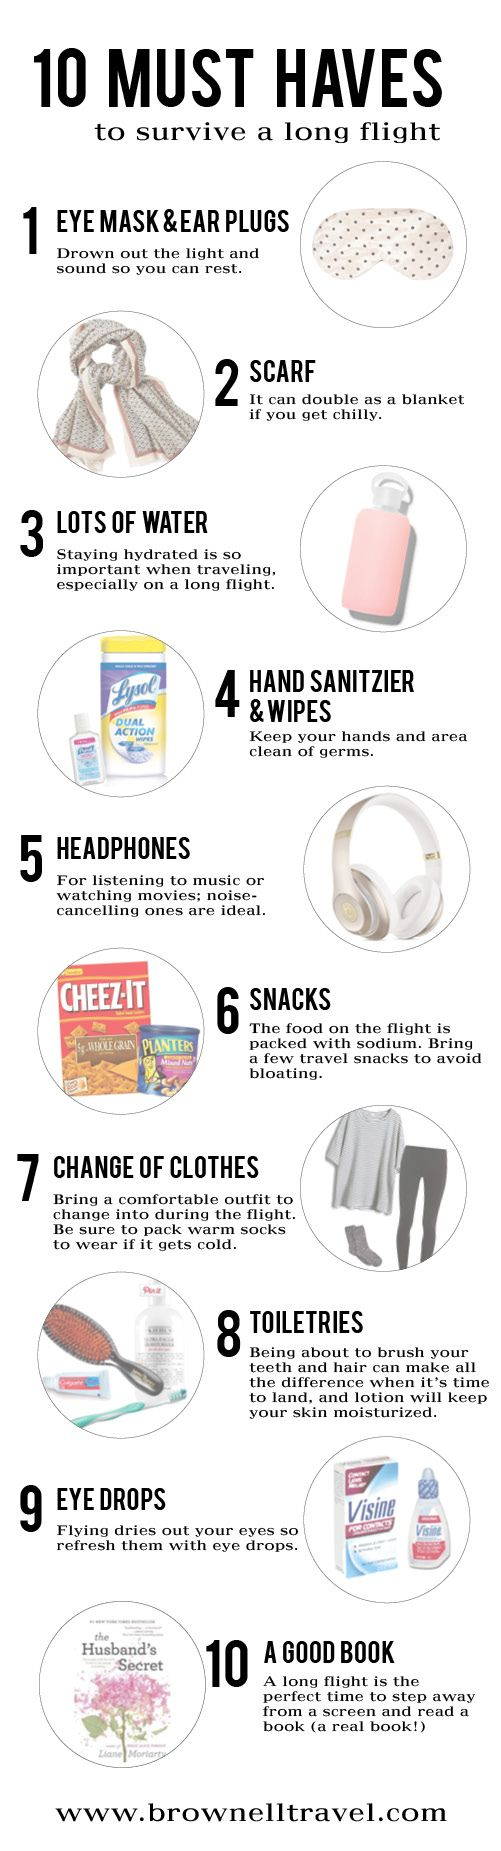 Headed on a long flight? Don't leave without these 10 must haves…